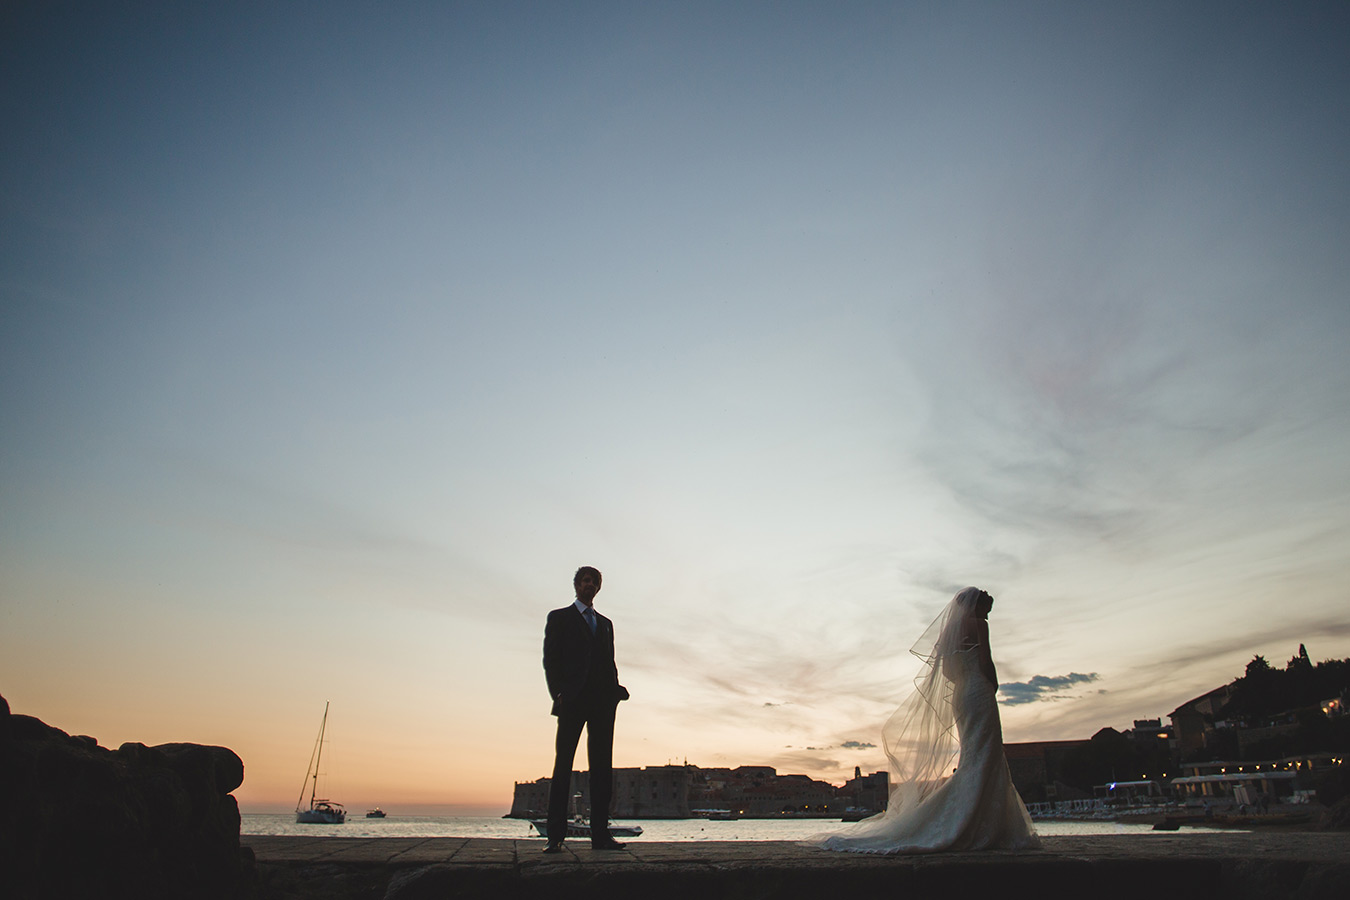 One of a set of images taken at this chic destination Wedding of Jenna & Nick. The stylish old town of Dubrovnik, Croatia.  The couple together in silhouette.  Photography by Matt Porteous